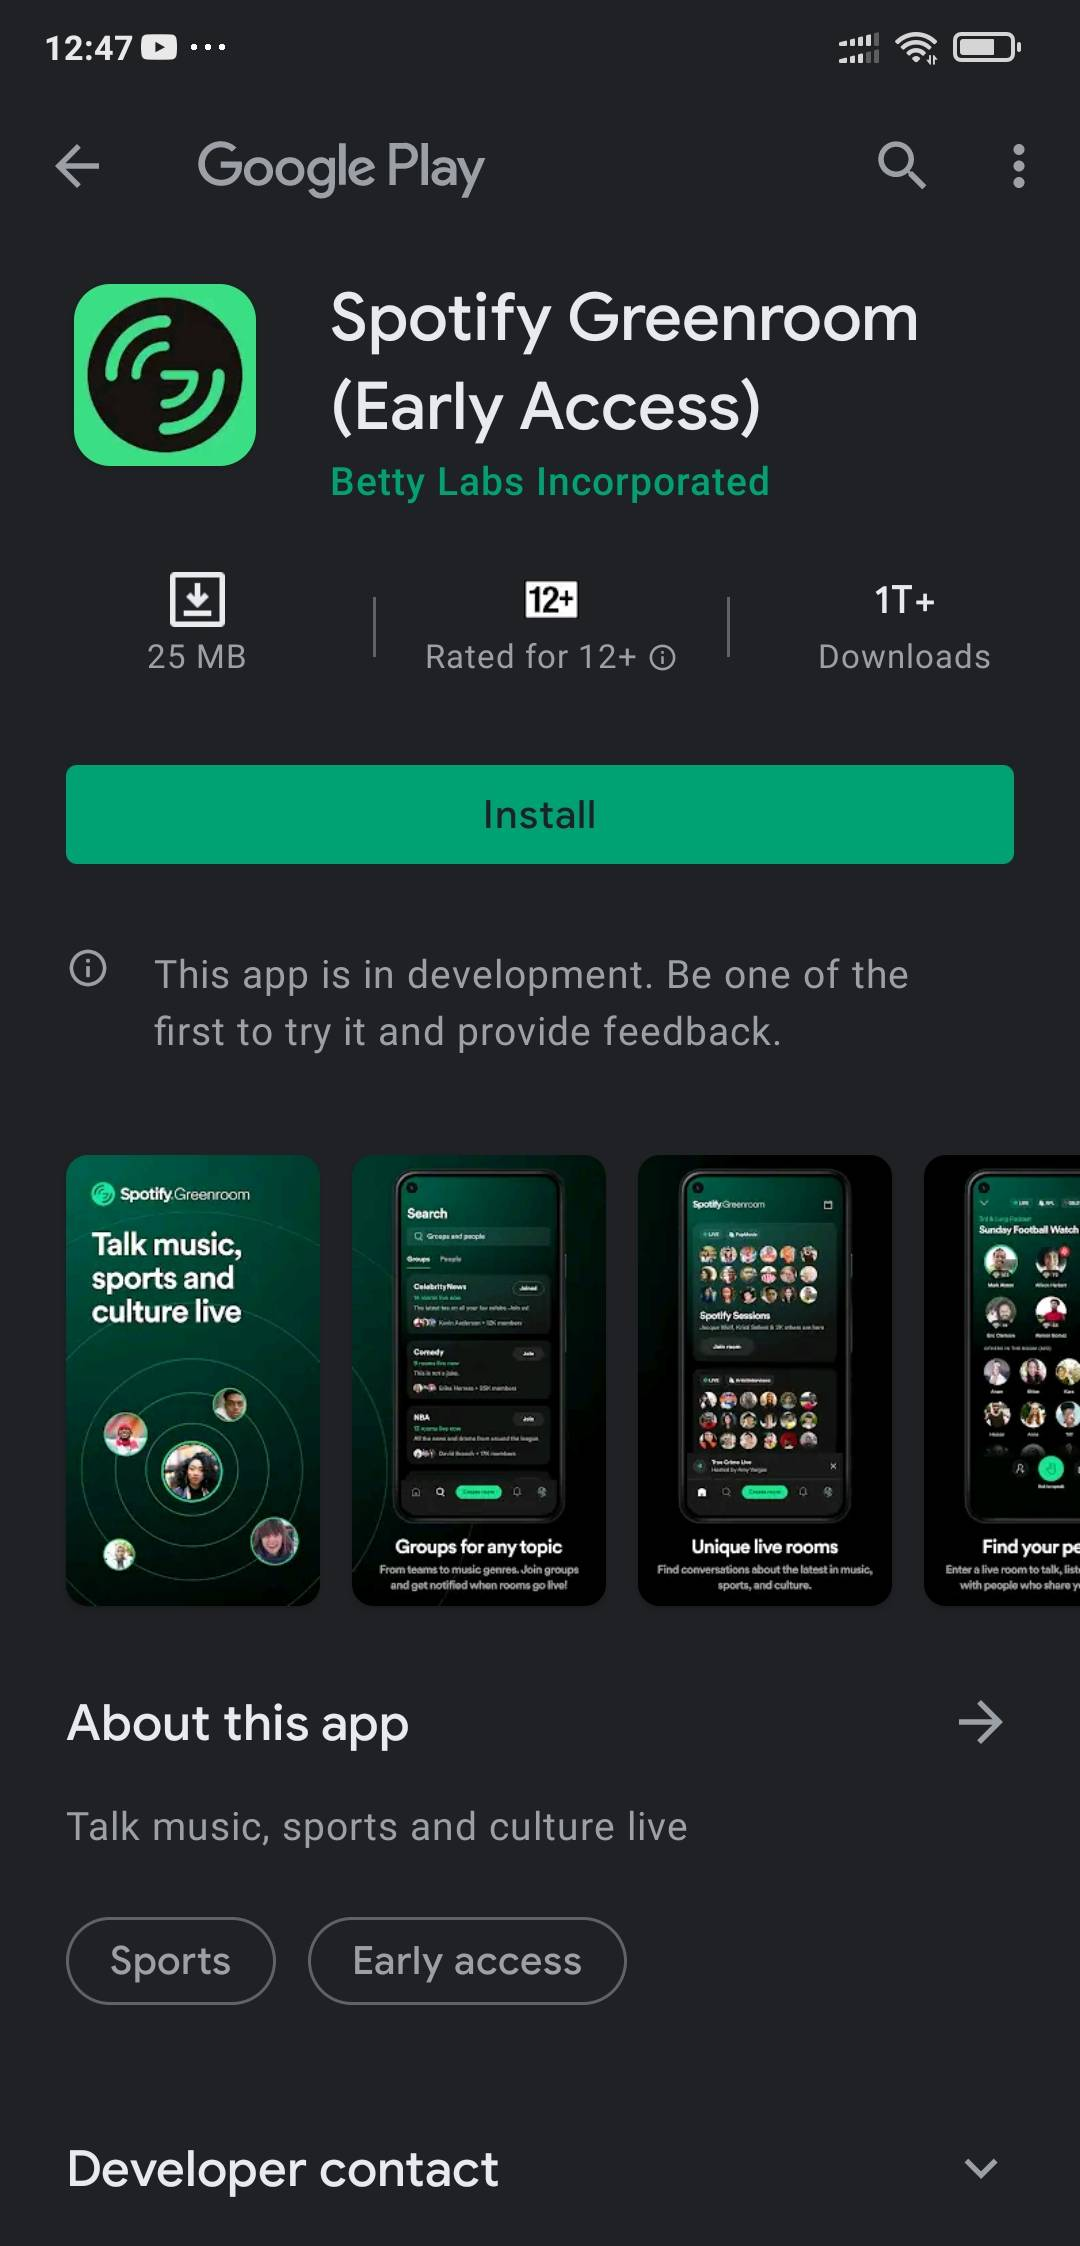 install the app from play store